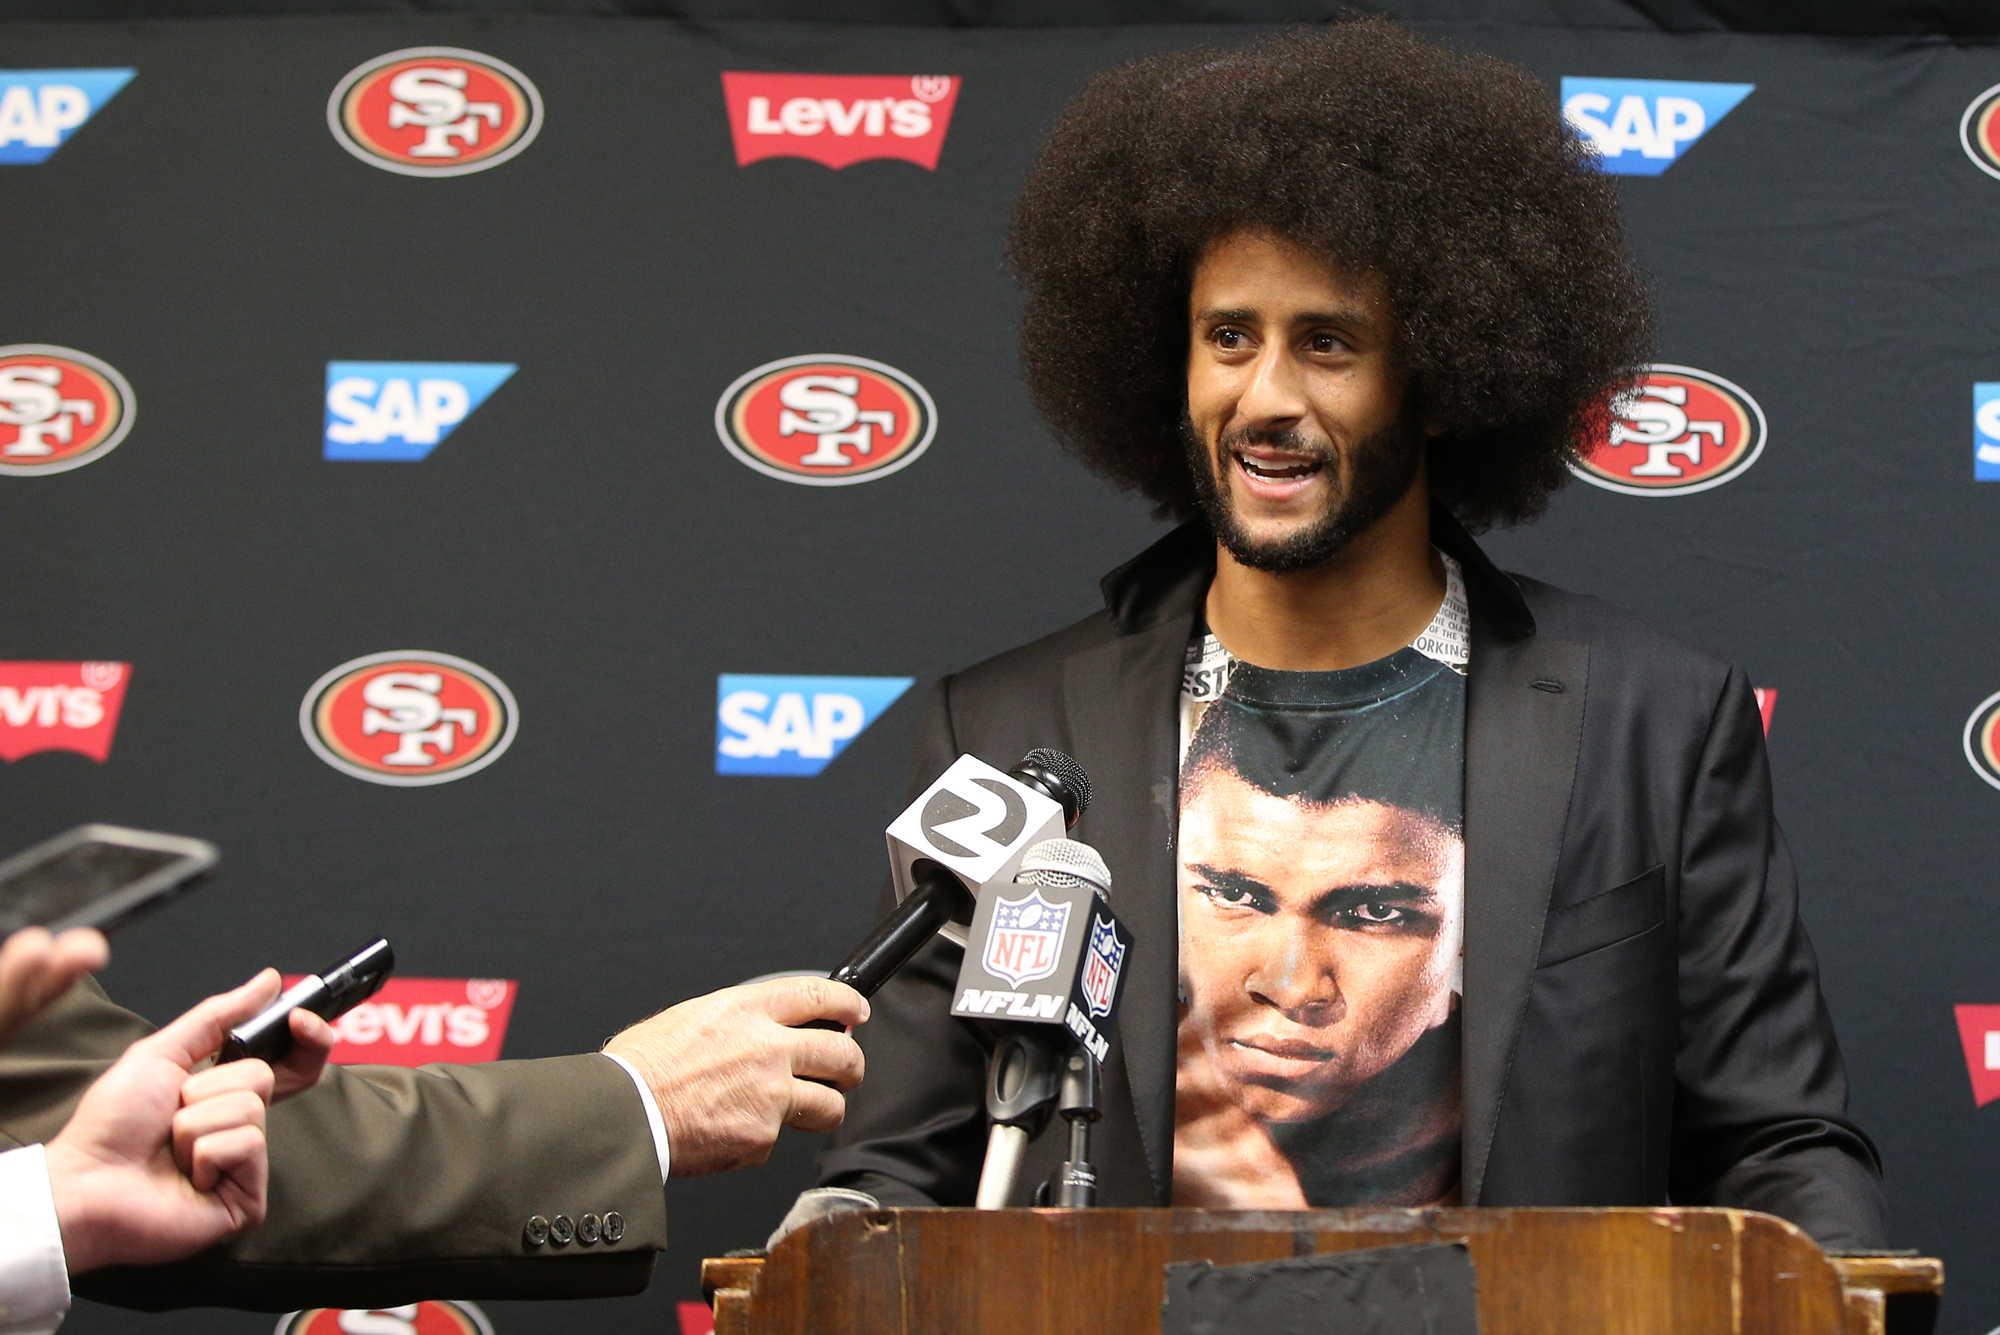 San Francisco 49ers quarterback Colin Kaepernick (7) talks to reporters during a press conference after an NFL game between the San Francisco 49ers and Buffalo Bills at New Era Field in Orchard Park, NY.